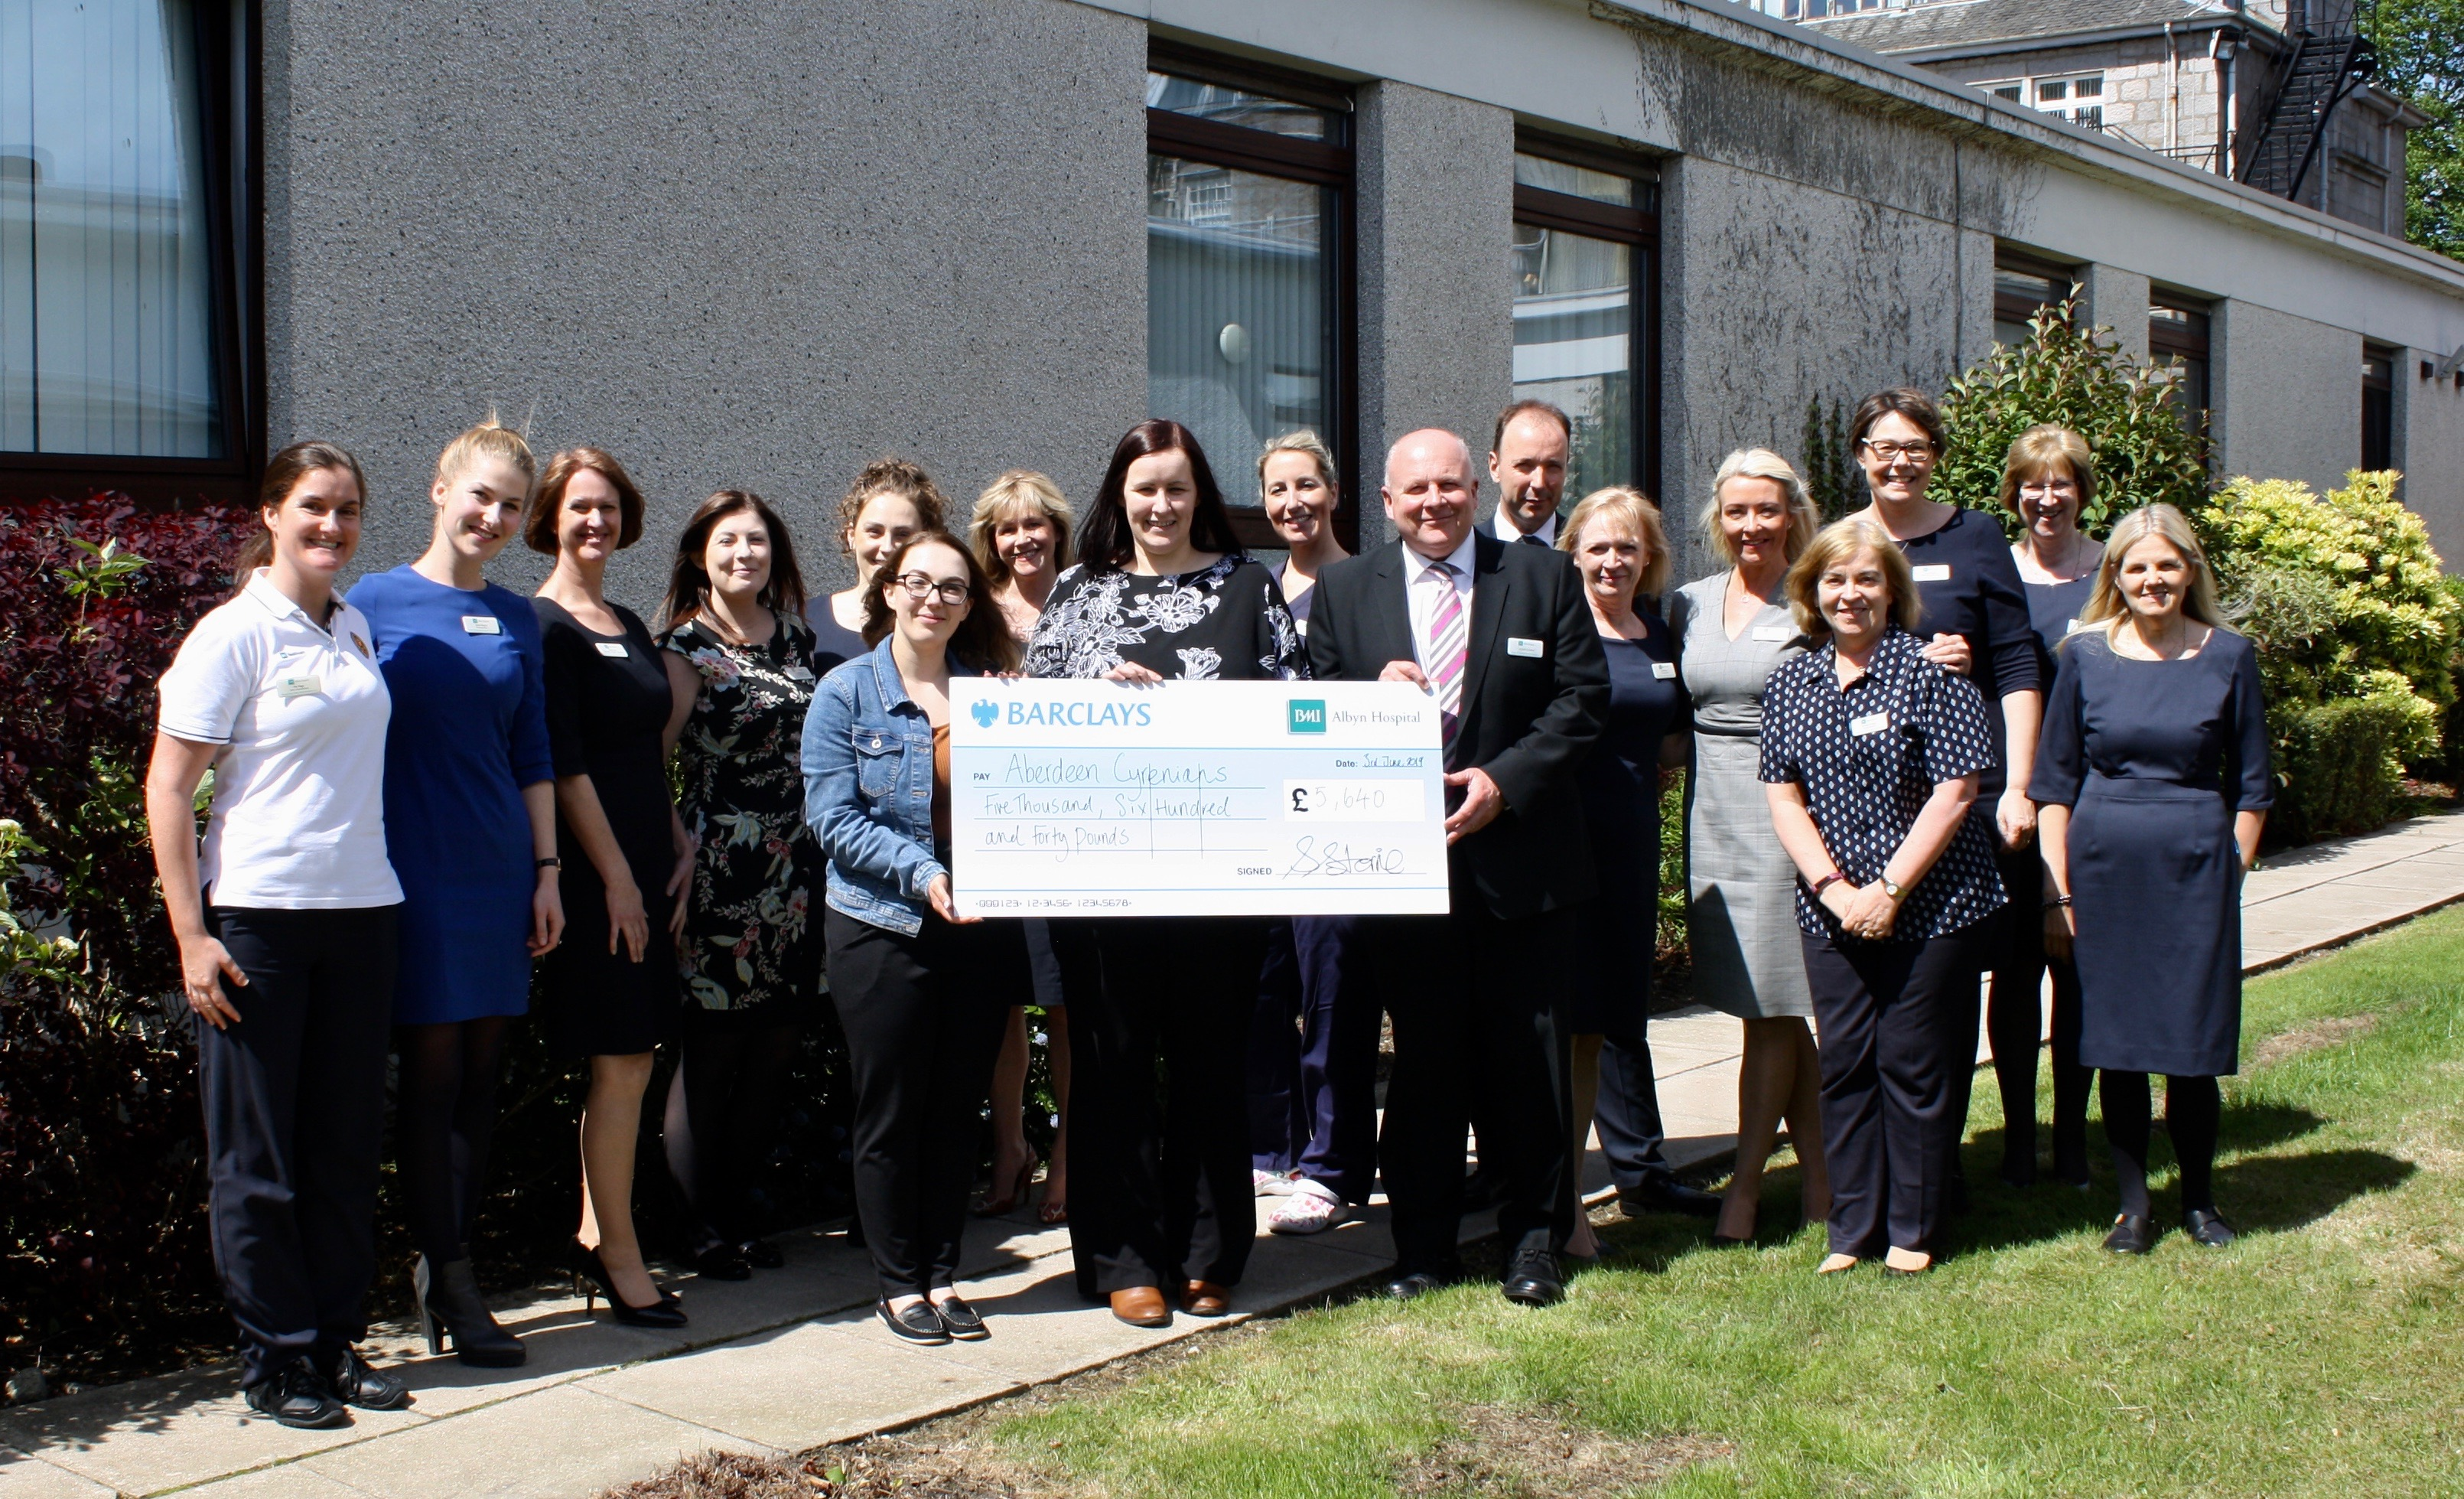 Hospital staff gift a £5,620 cheque.